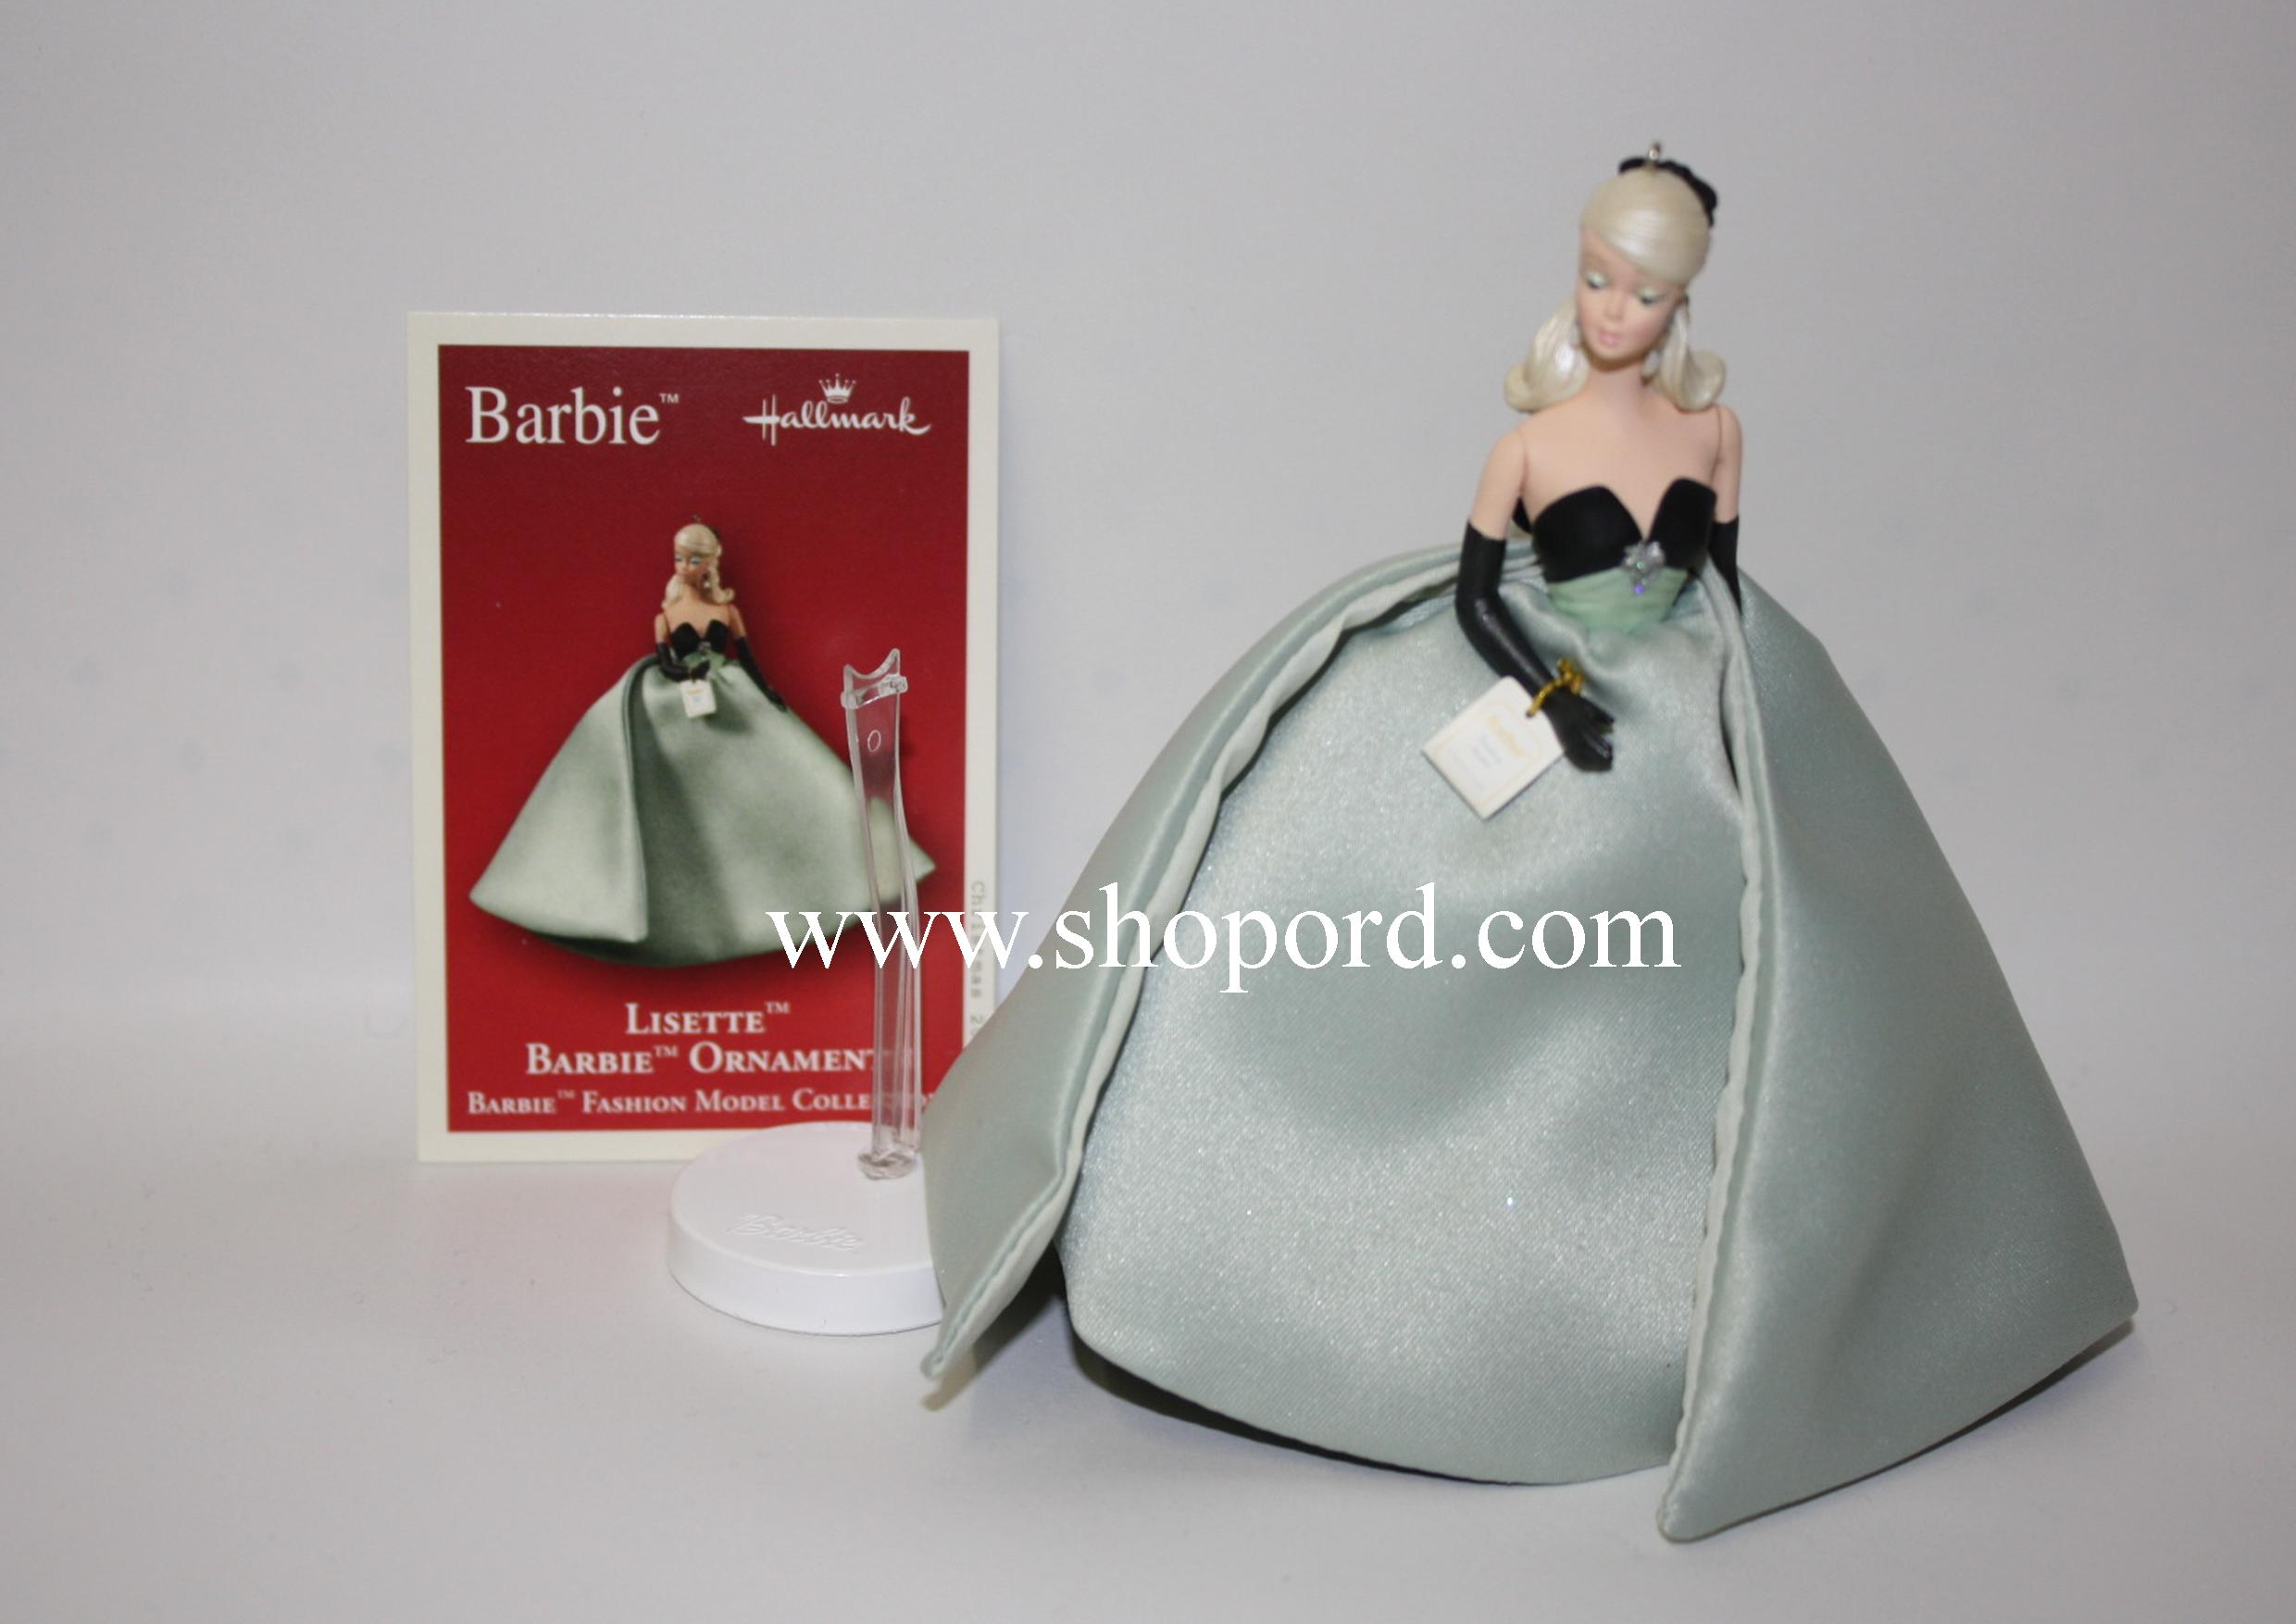 Hallmark 2004 Barbie Lisette Fashion Model Ornament with display stand QXI8541